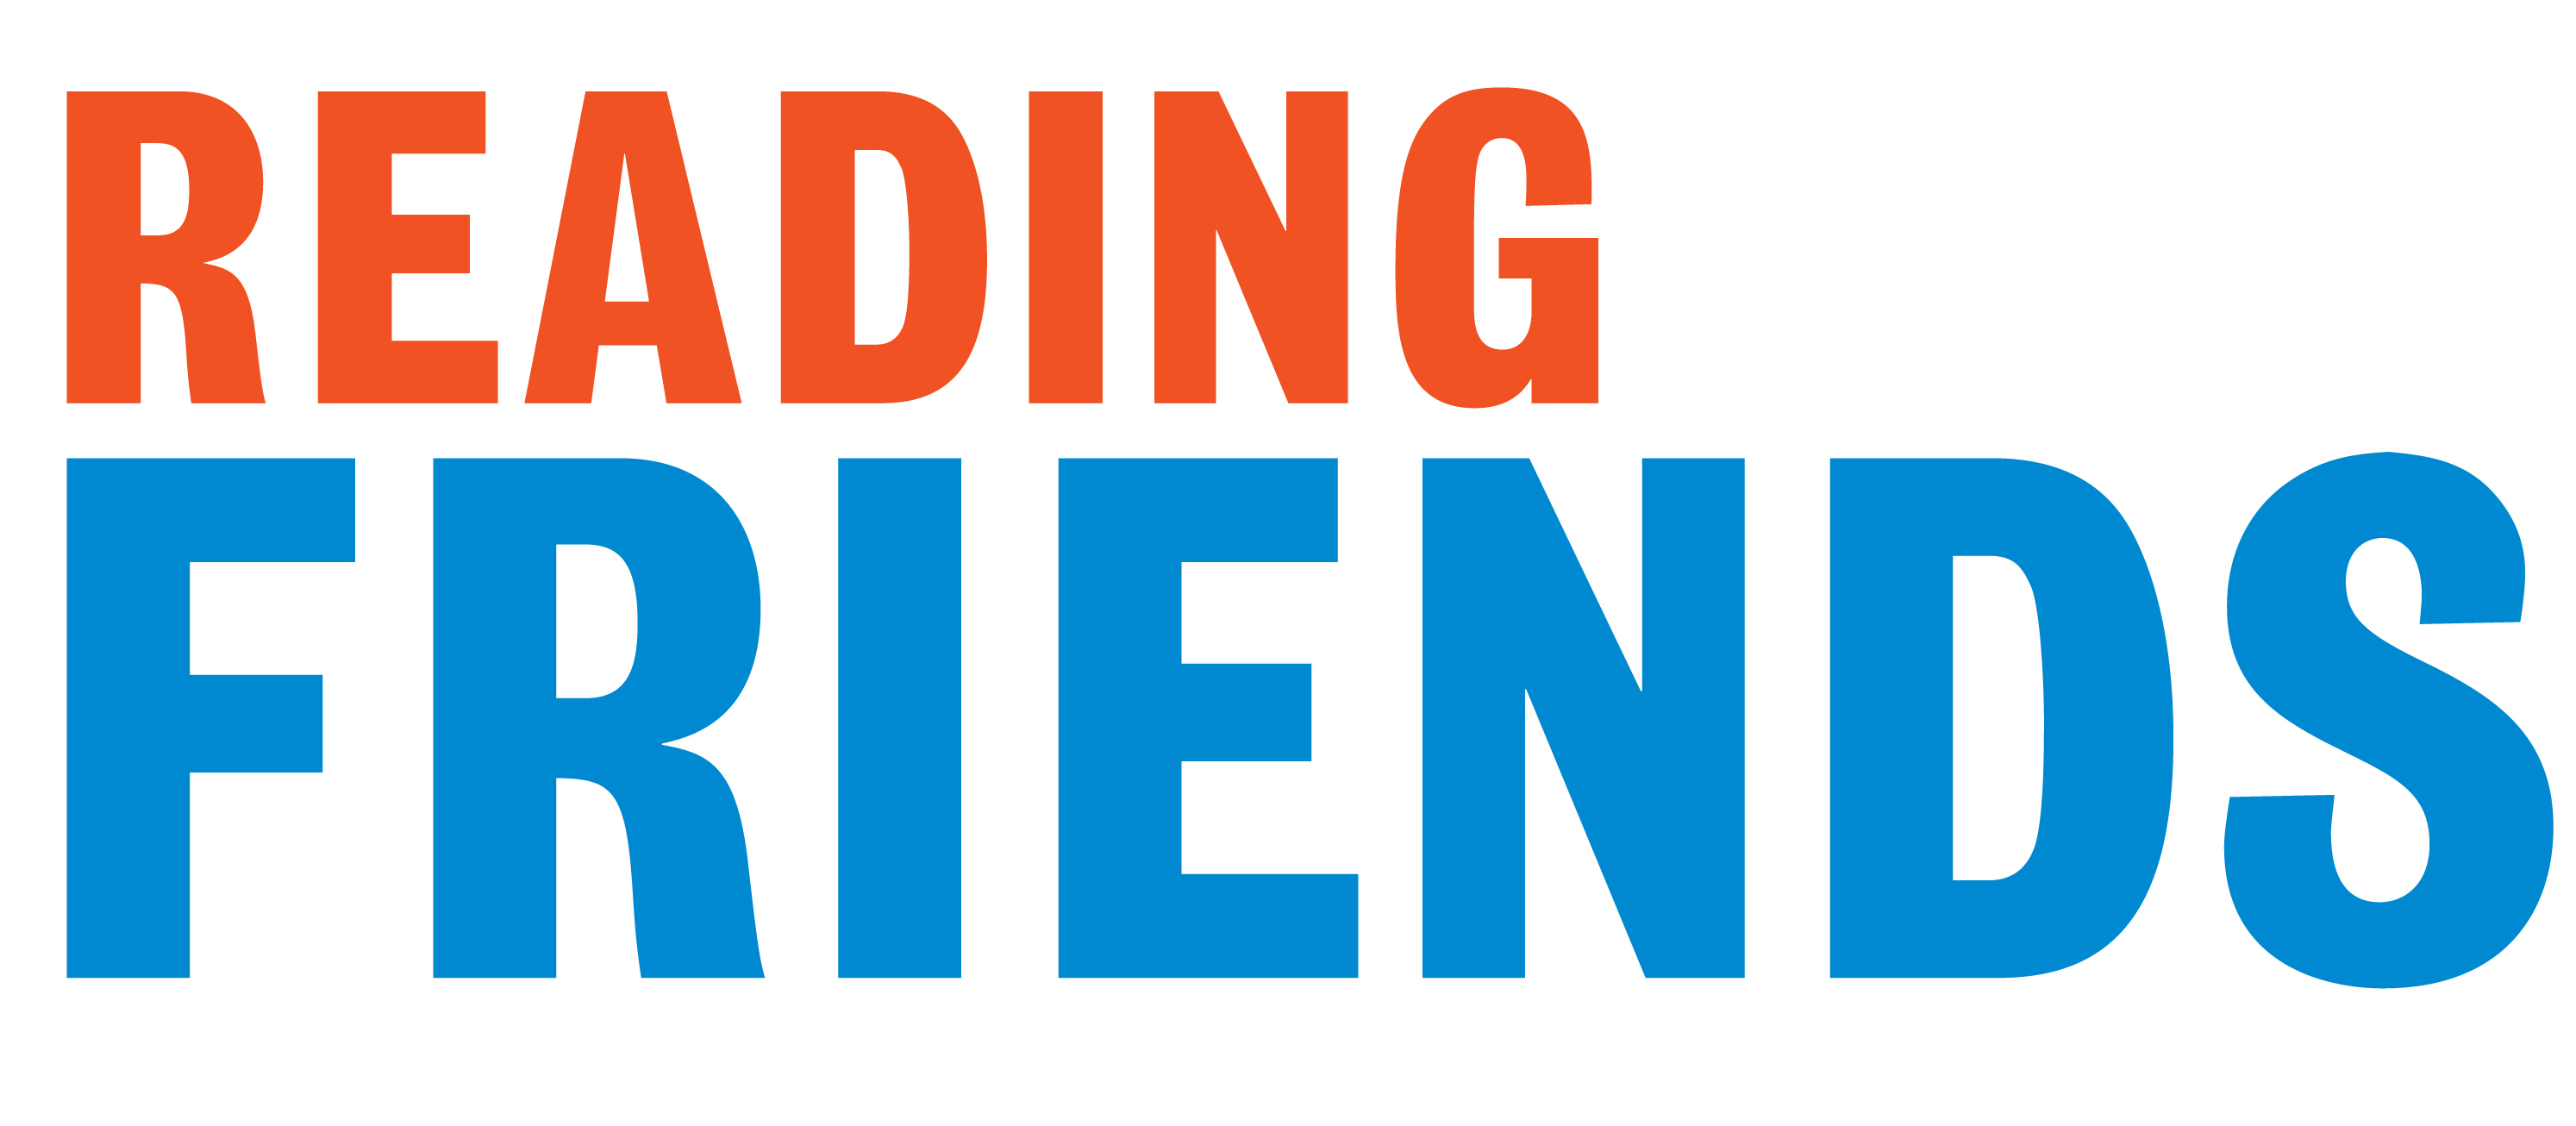 Reading Friends logo